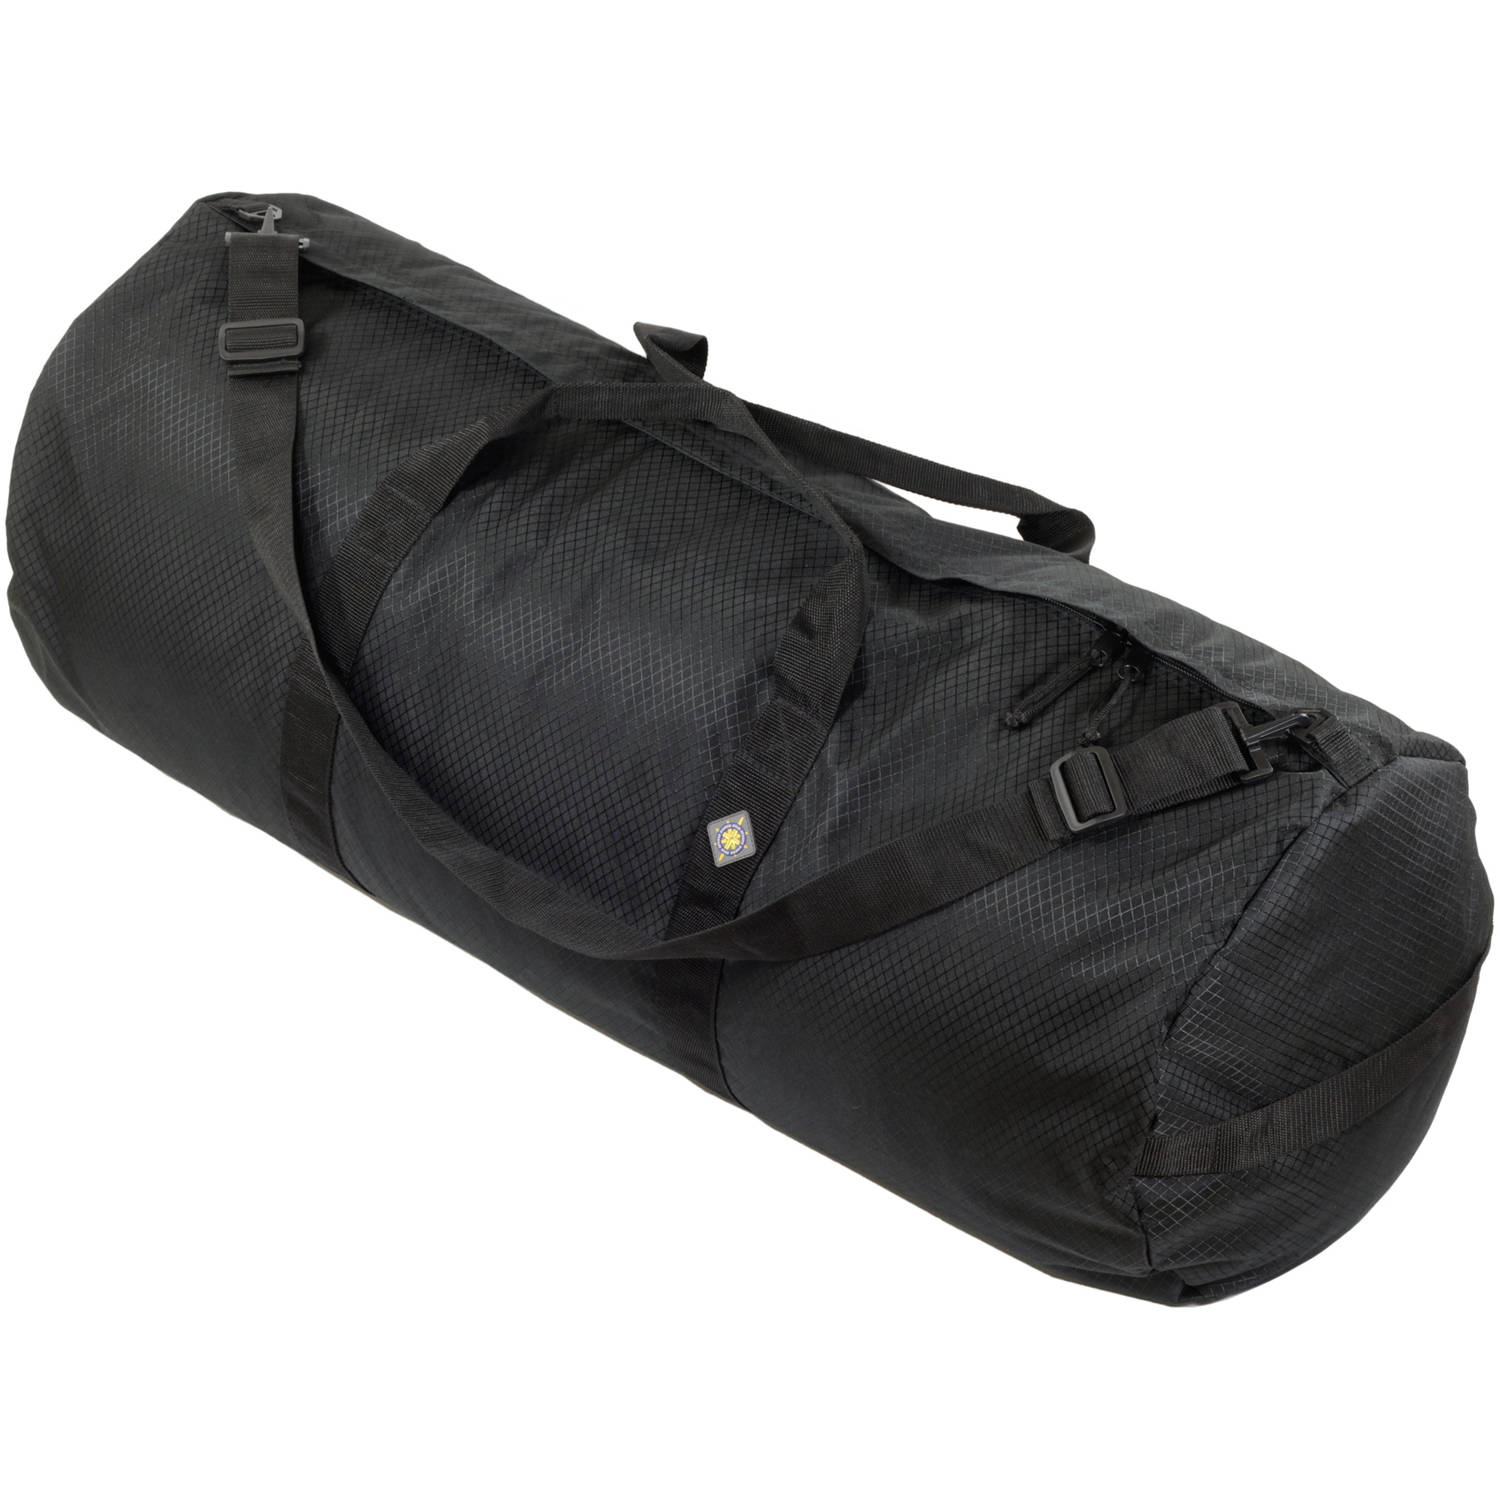 Northstar Bags North Star Sport Duffle Bag 16in Diam 40in L-Midnight Black by Northstar Bags